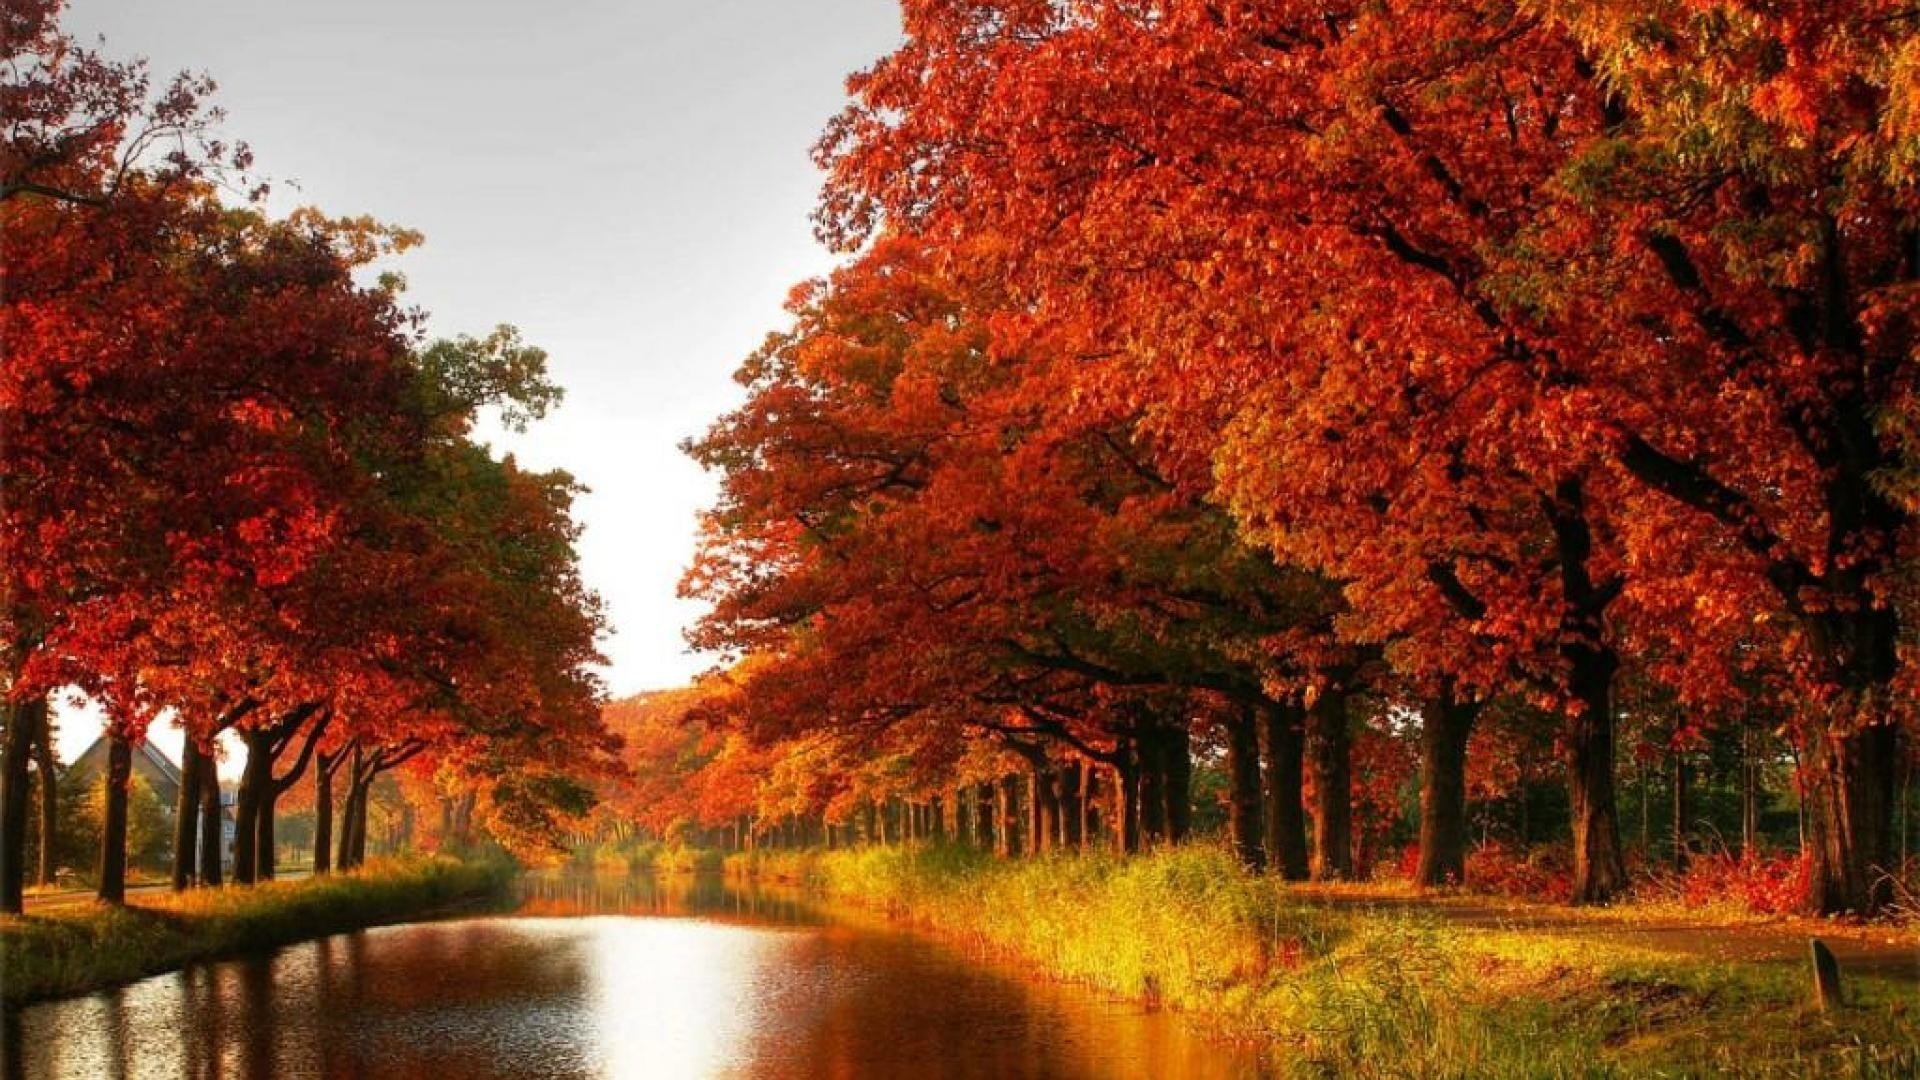 Fall Foliage Wallpaper For Iphone Autumn Tree Wallpaper 61 Images